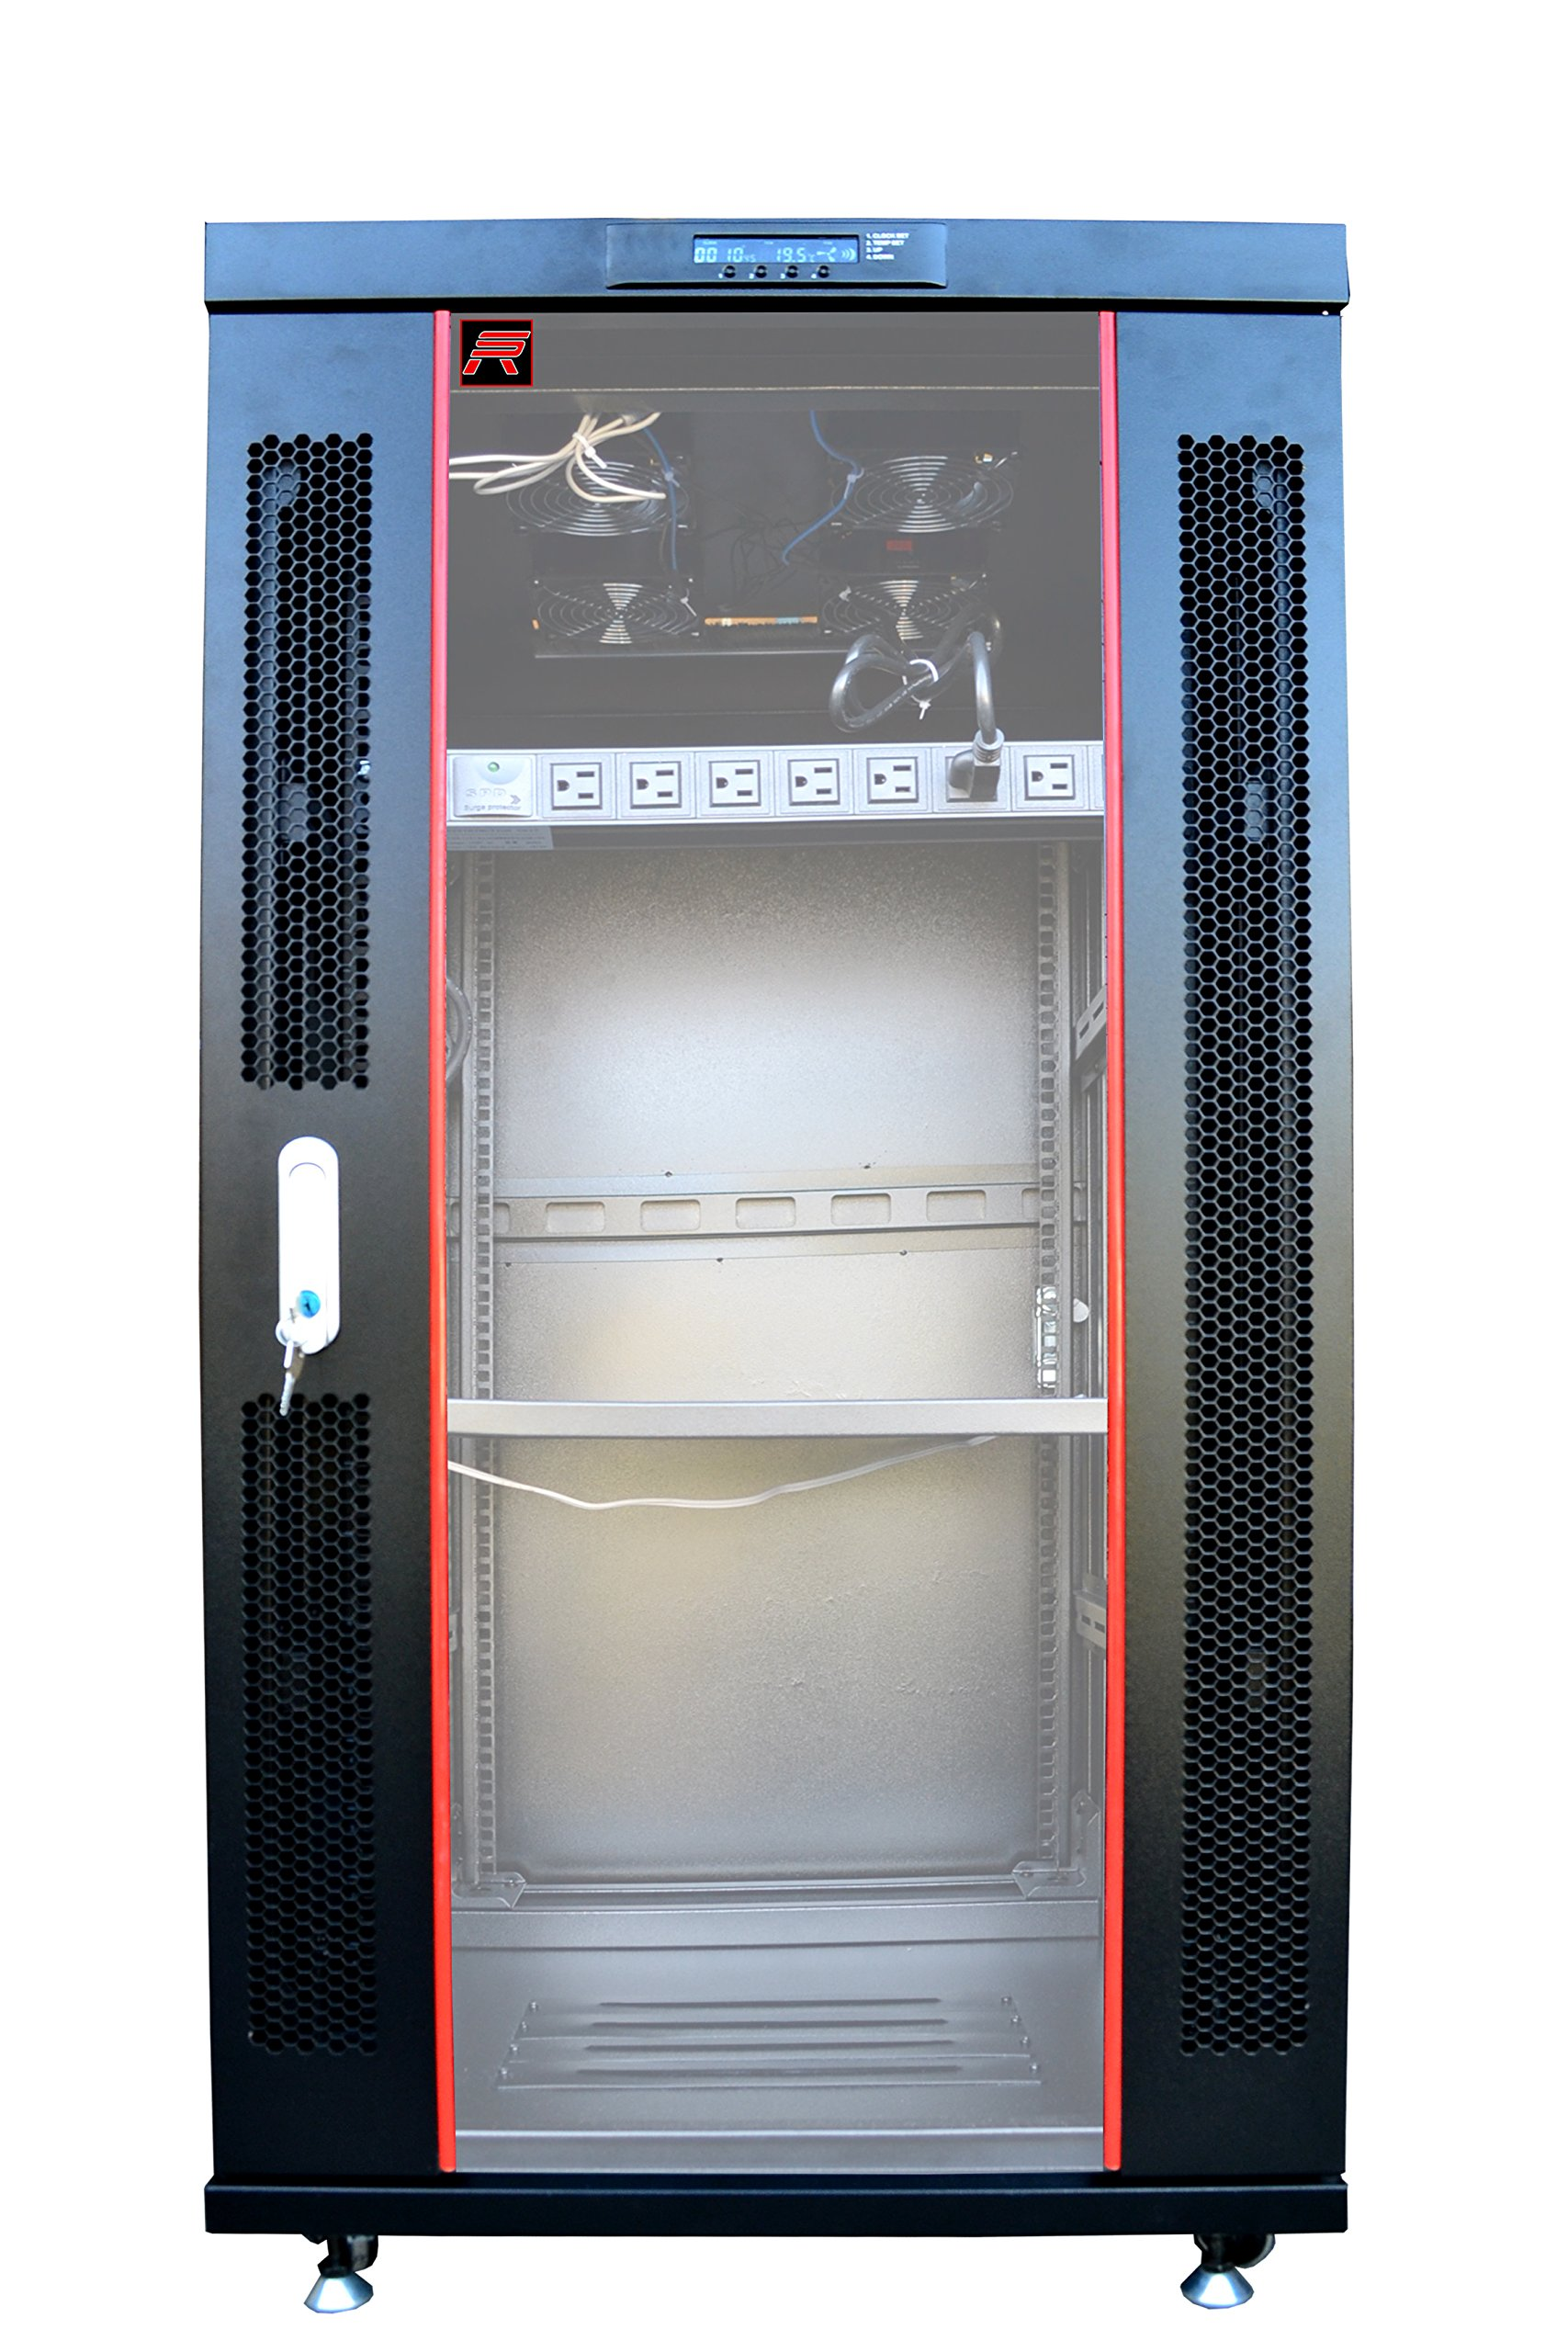 27U 32'' Deep IT Free Standing Server Rack Cabinet Enclosure. Temperature Control System, Casters, LCD-Screen, PDU and Other Accessories Included - Over $ 150 Savings